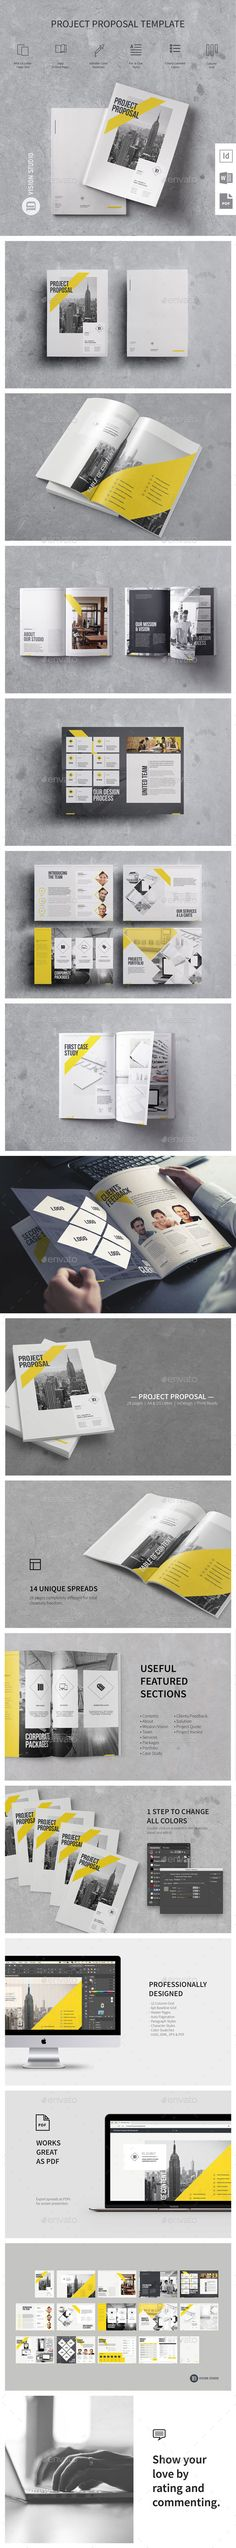 Sugercube InDesign Proposal Template for Business Proposal - proposal of work template